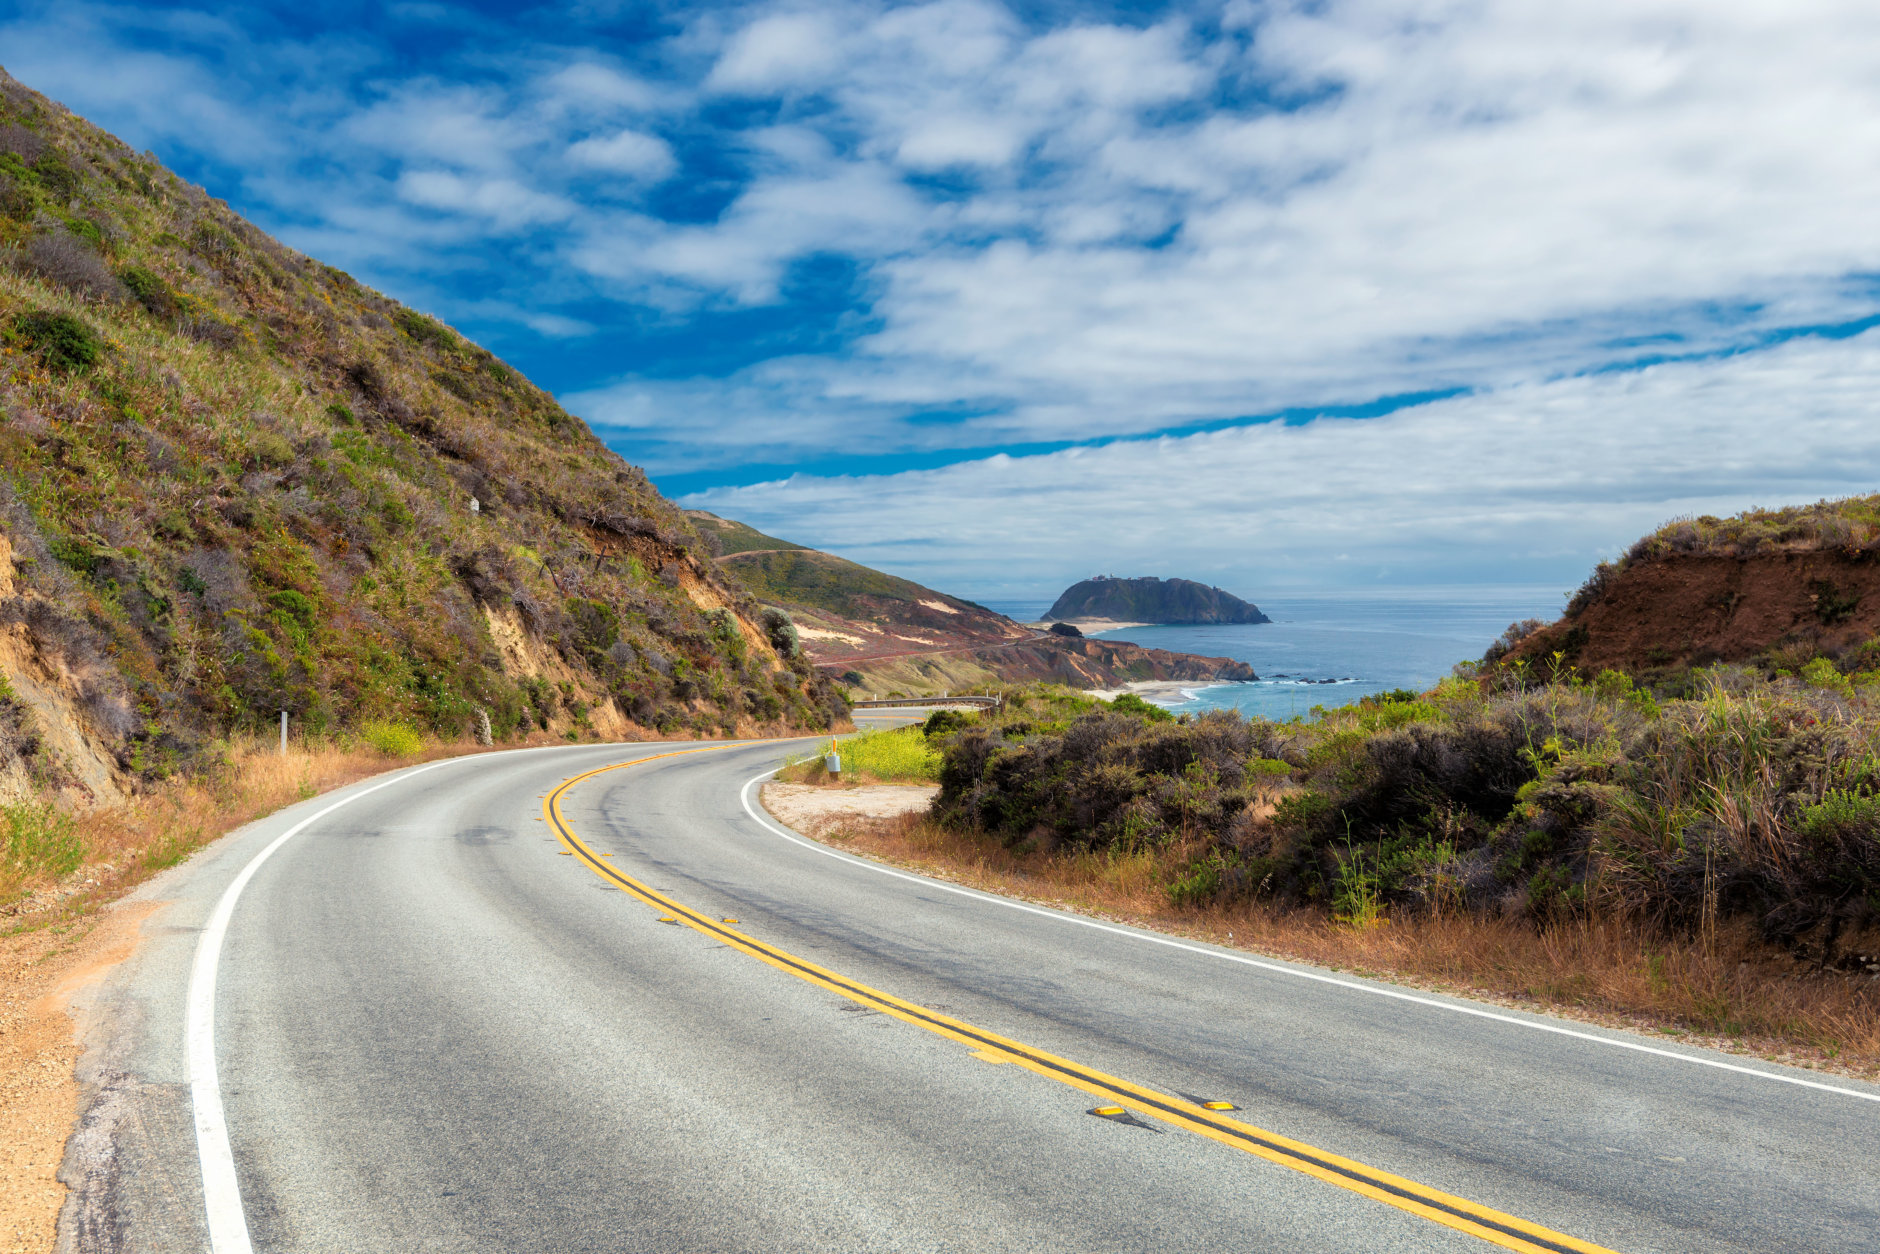 Pacific Coast Highway (Highway 1) at southern end of Big Sur, California.